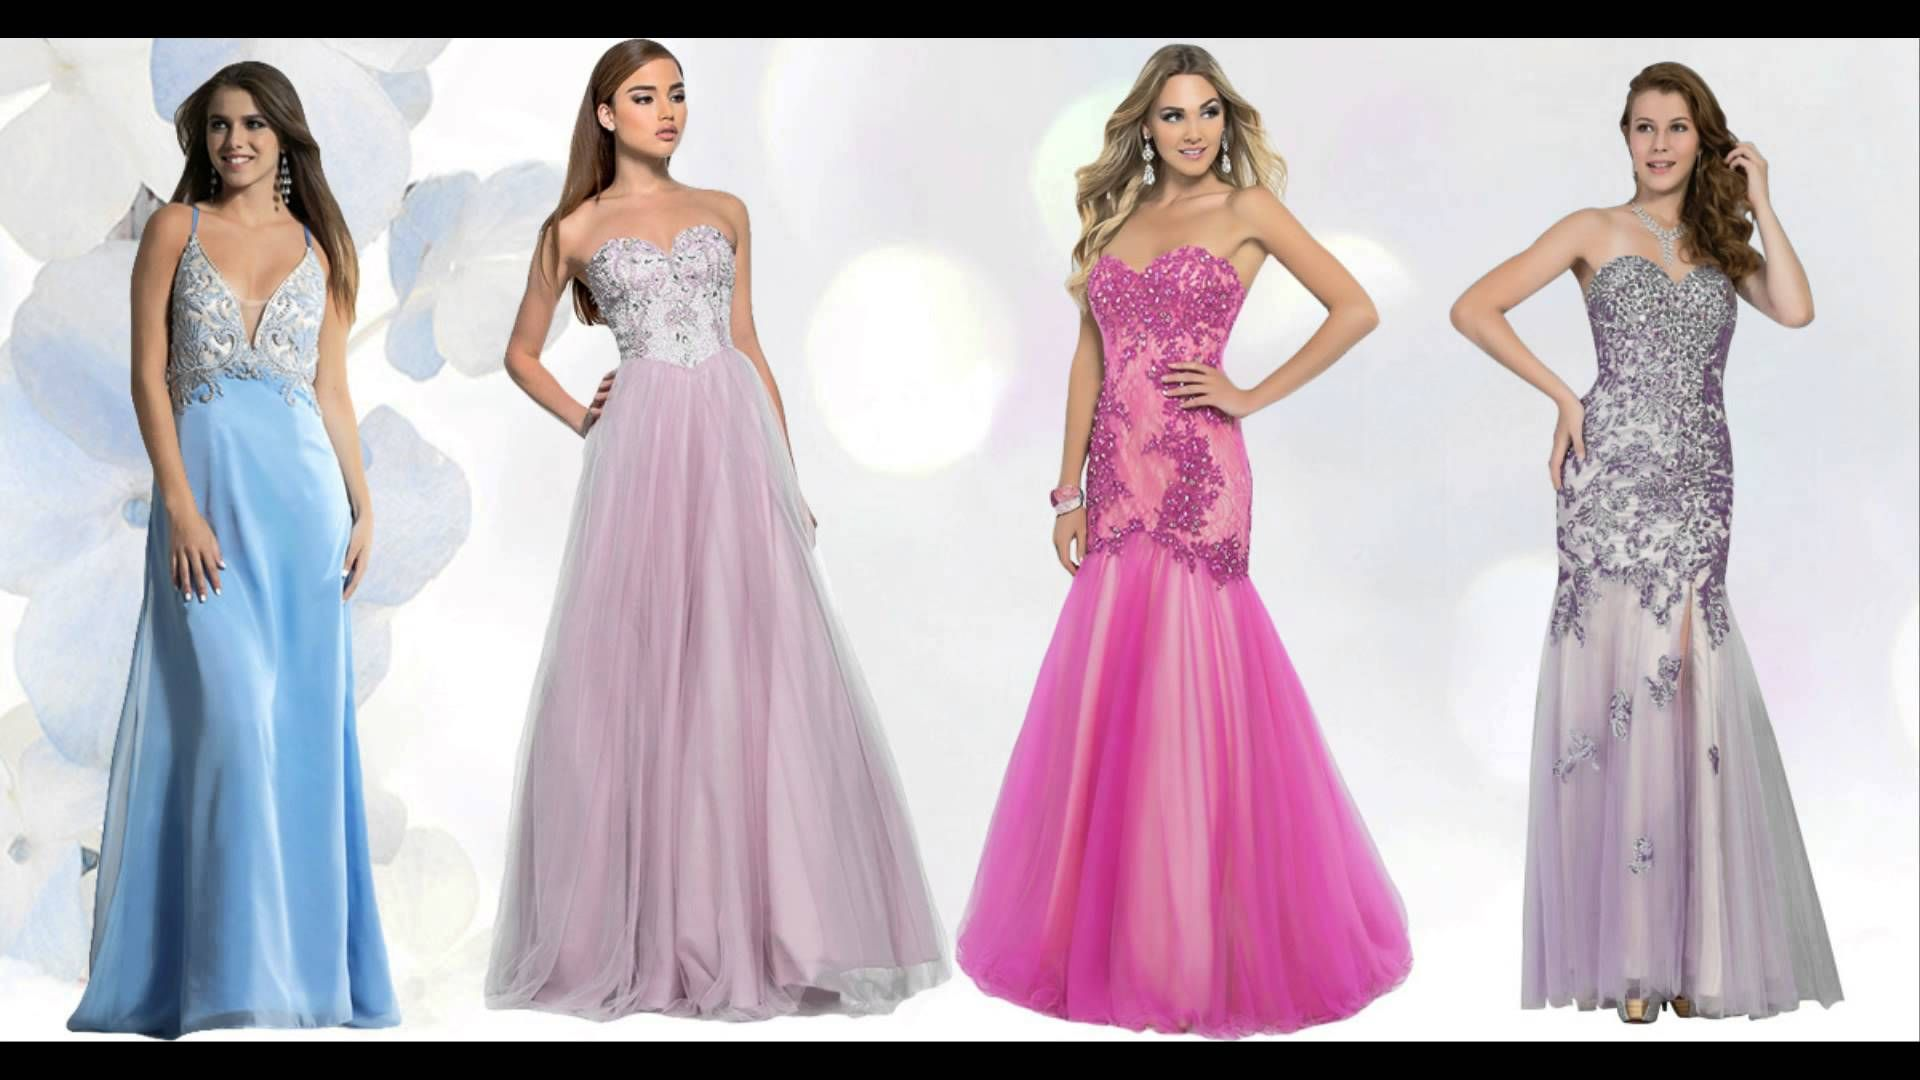 Poppromhouse - #Long 2015 #Prom #Dresses Under 100 - http://www ...